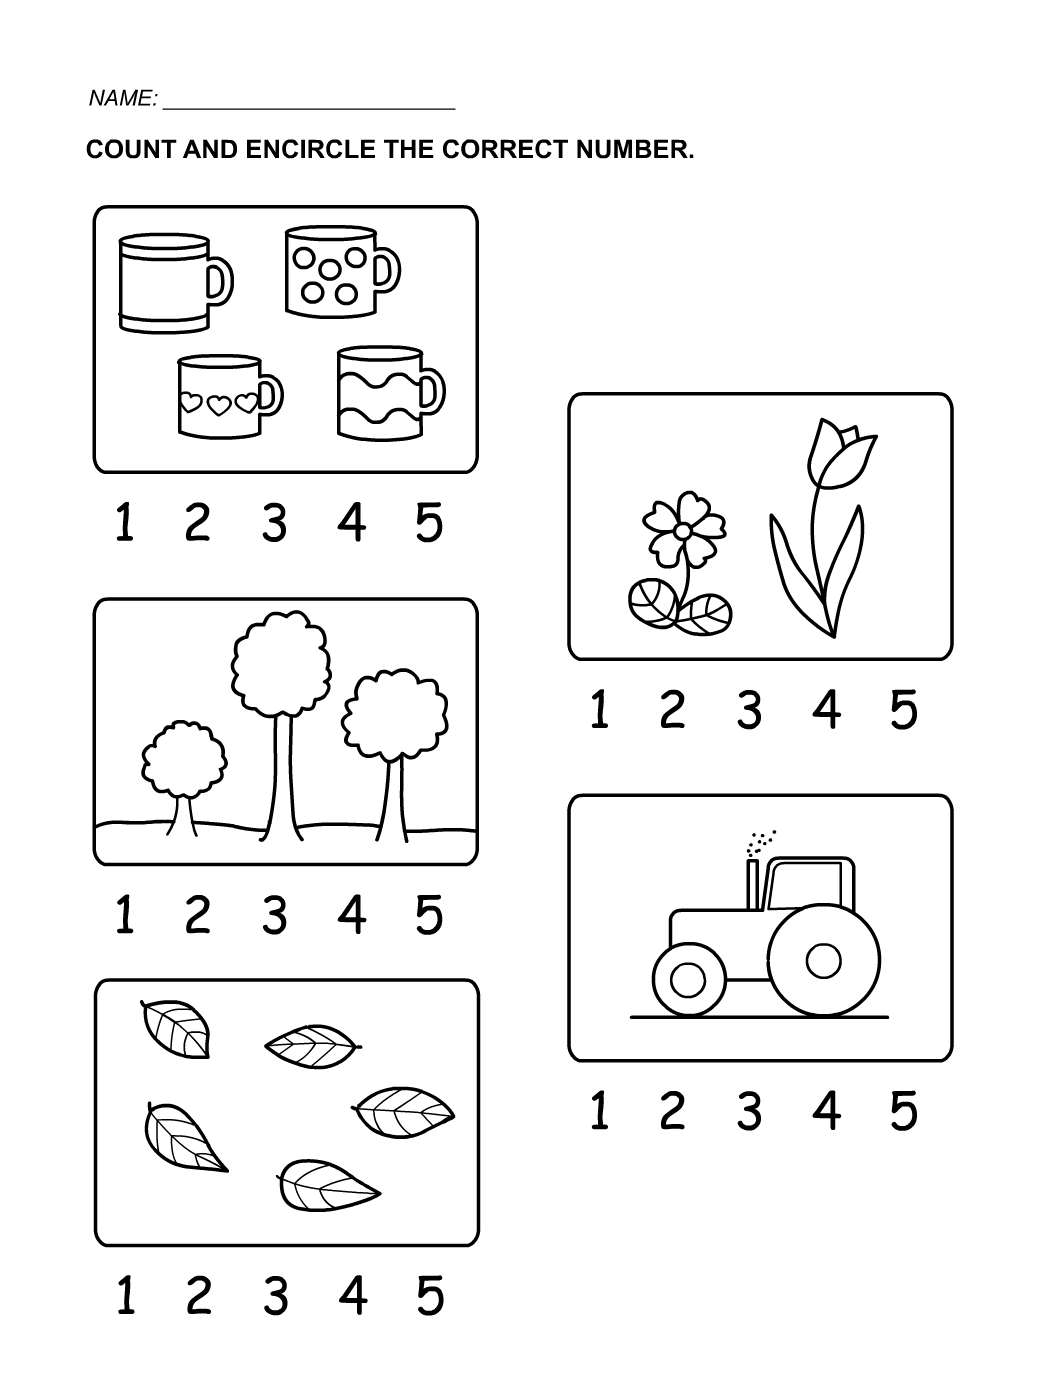 tracing numbers 1-5 count